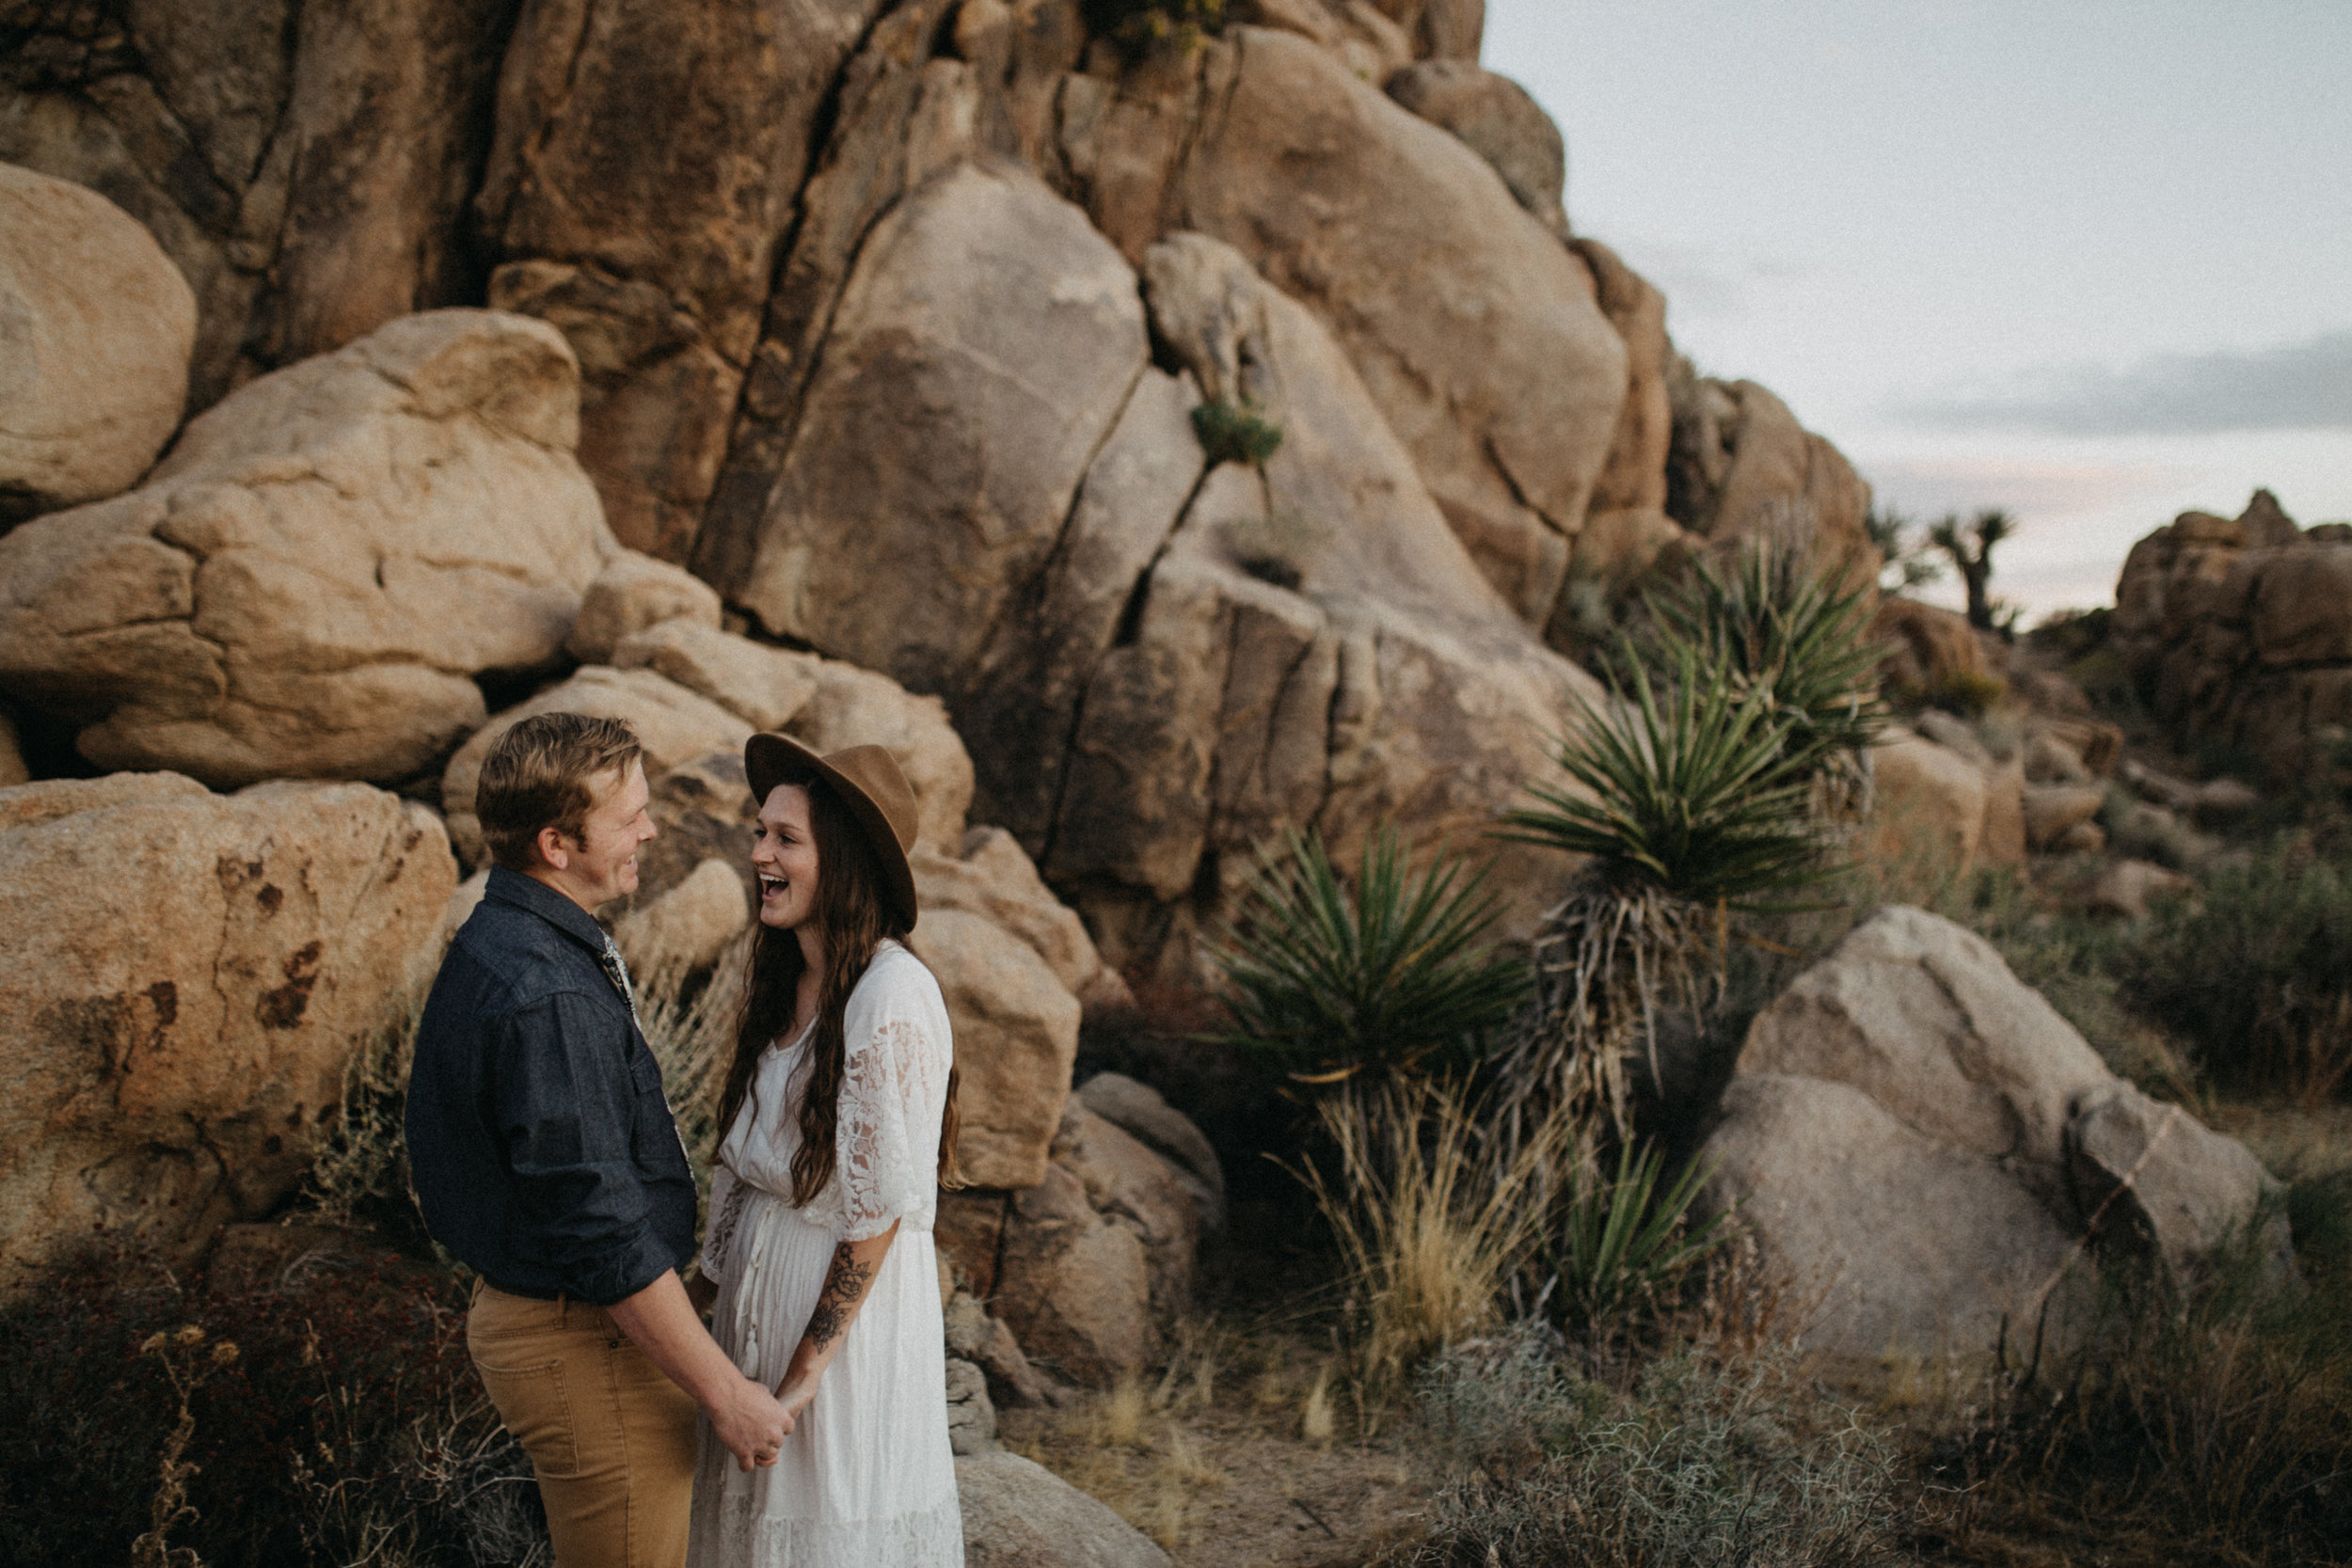 Joshua Tree National Park Adventure Couples Session Photographer Payton Marie Photography-32.jpg